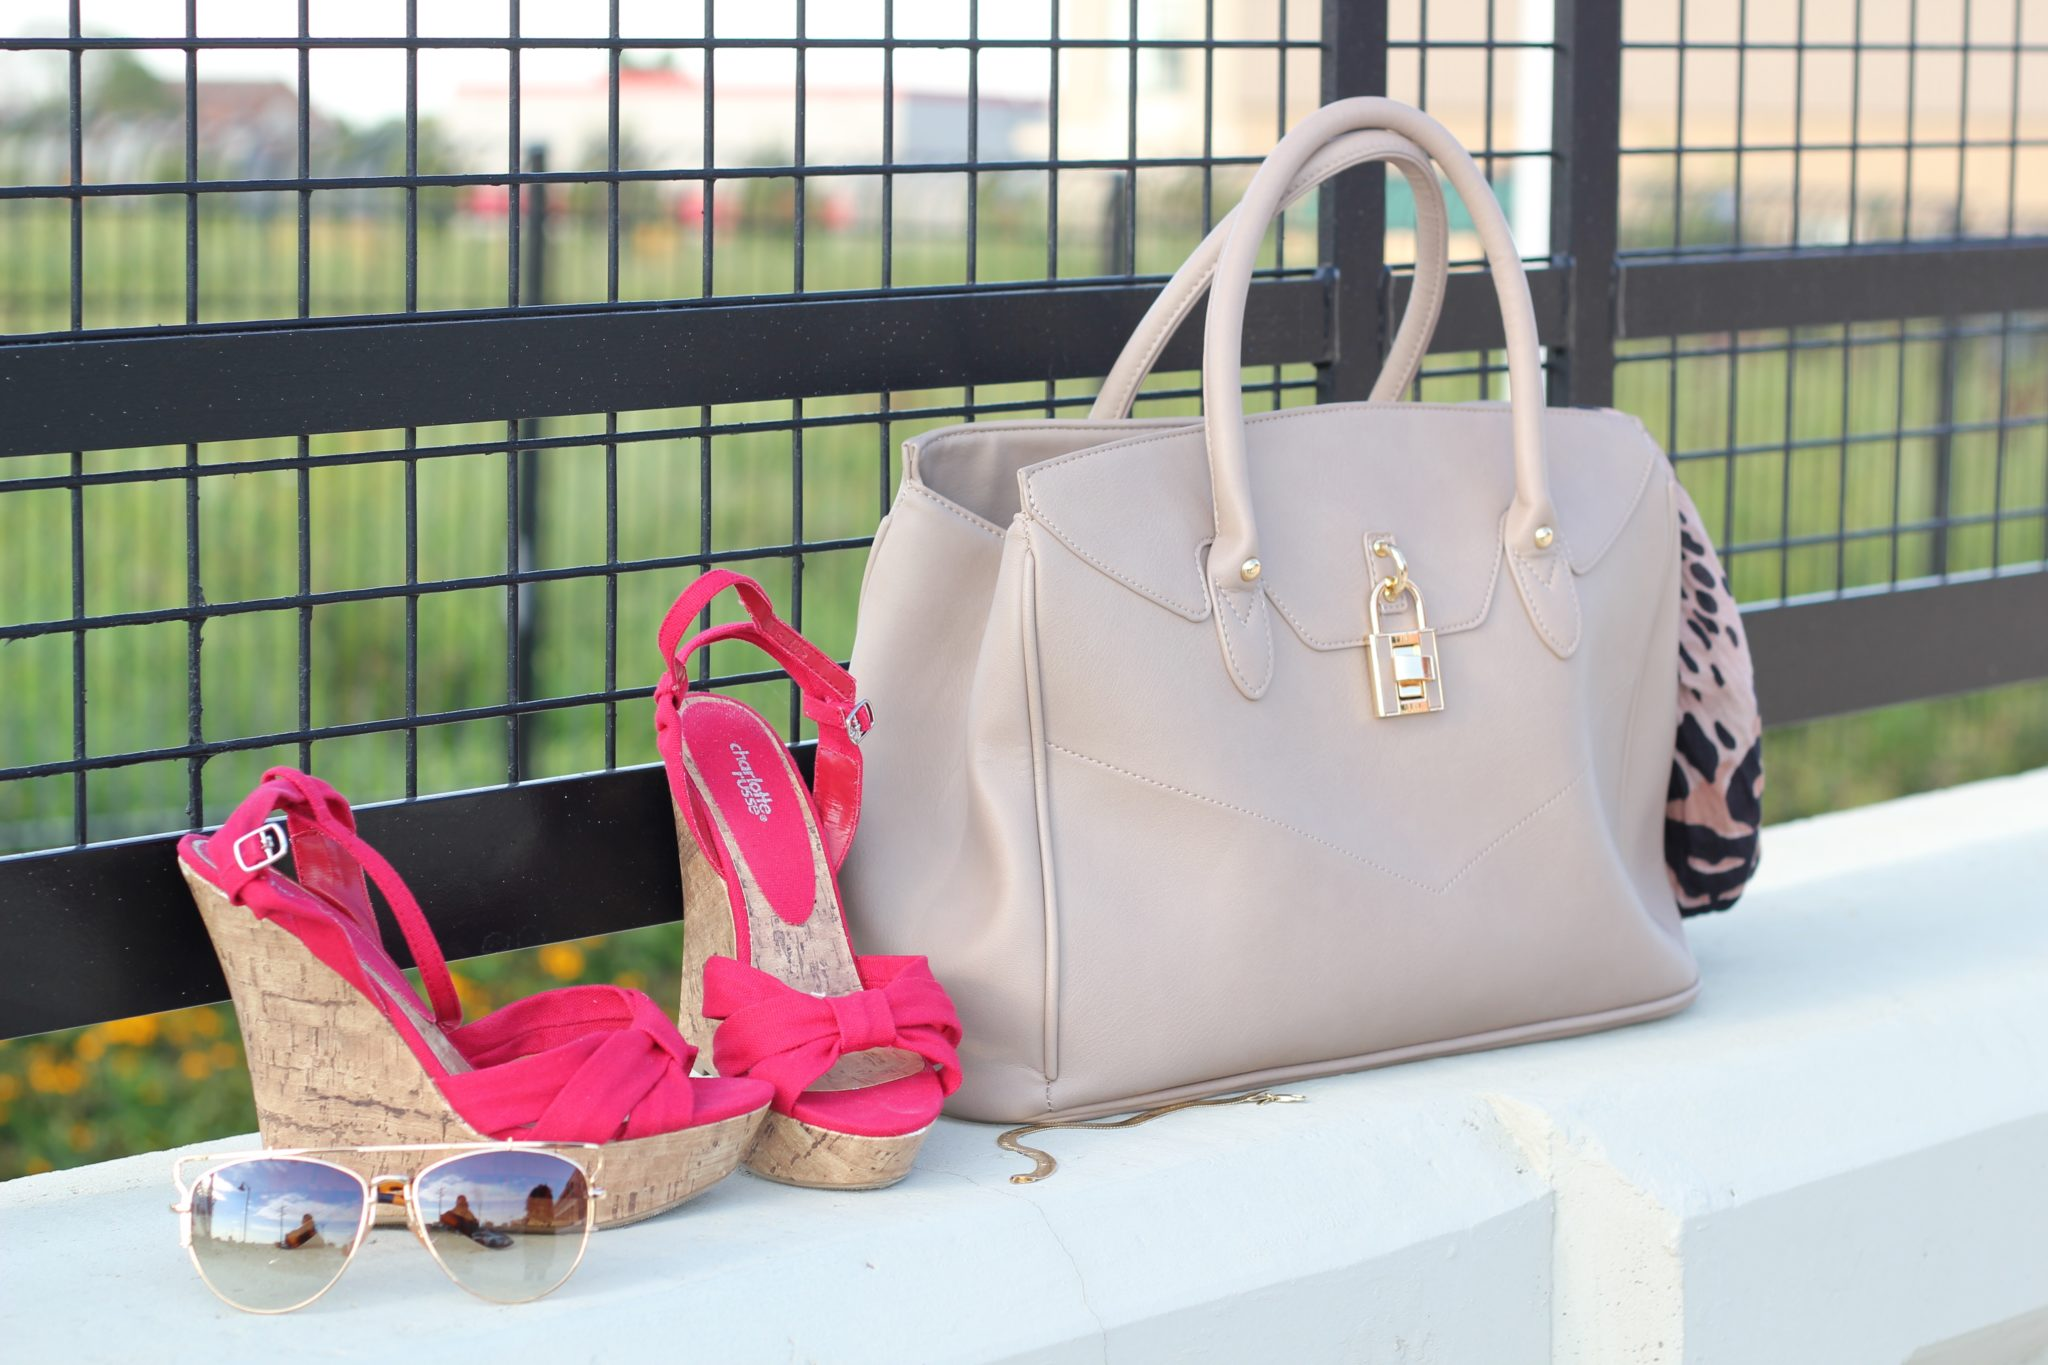 img_7410 Bootlegged...eBay Fall 2016 Justfab Meijer Style OOTD Uncategorized